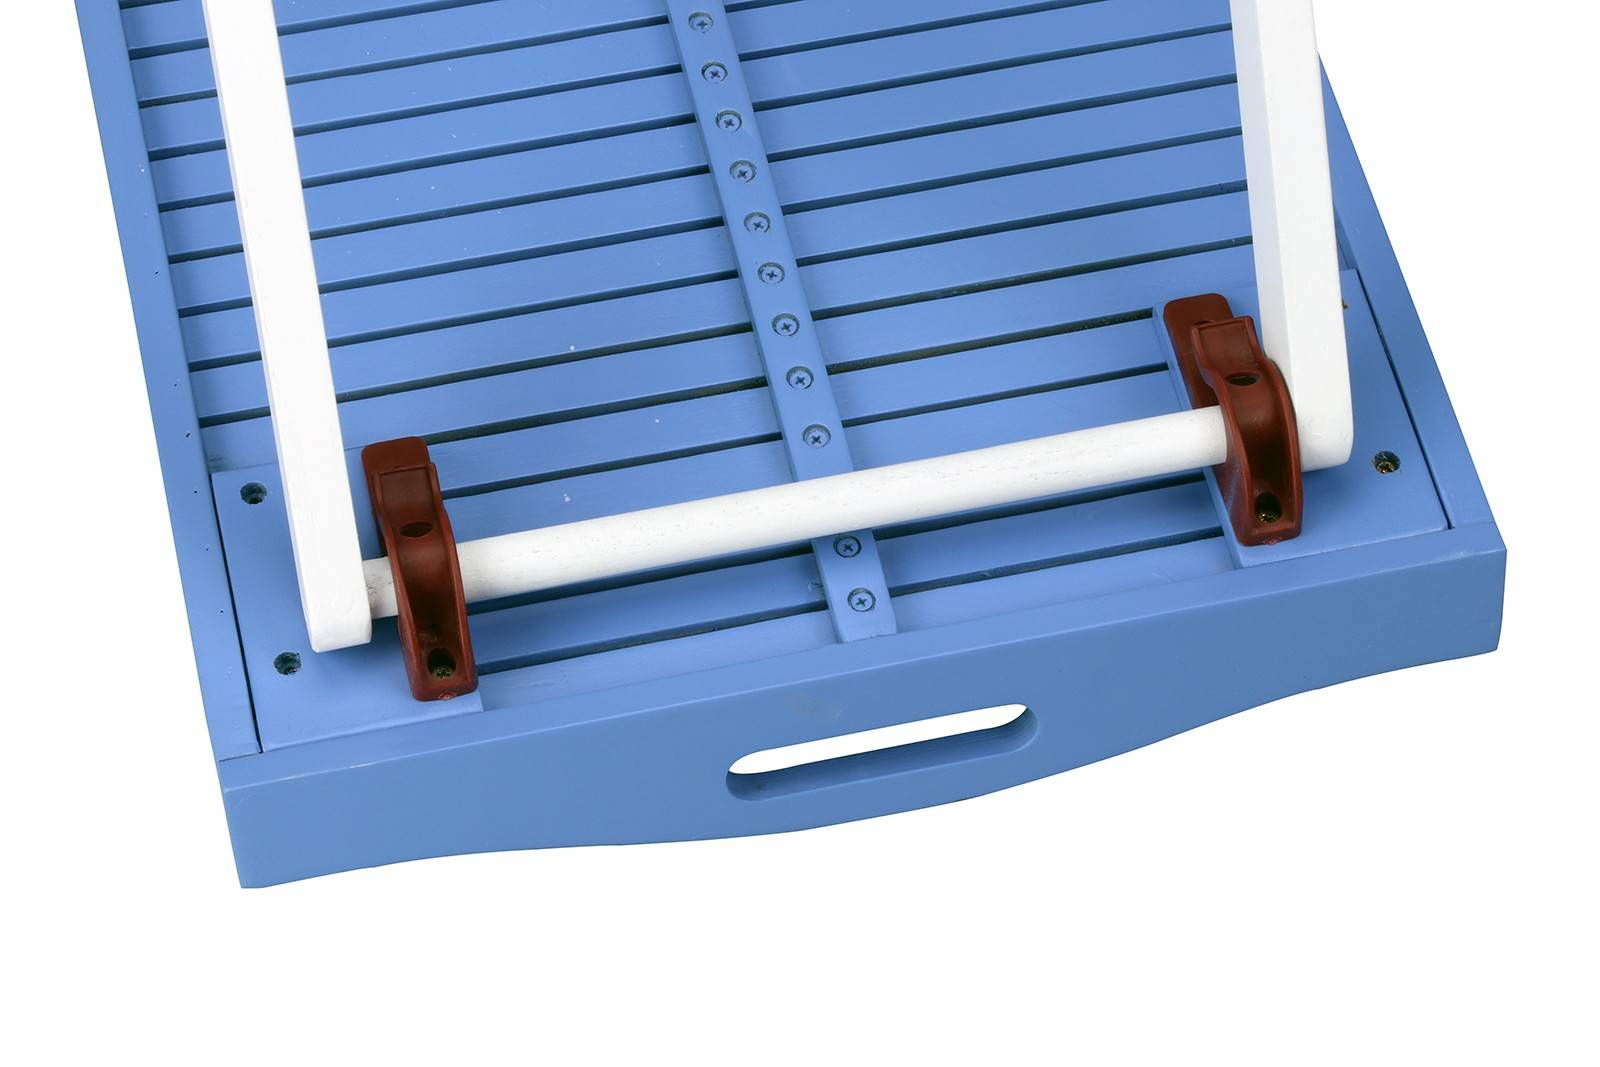 Butlers Folding Tray Table - Hardwood - Outdoor Paint - Blue